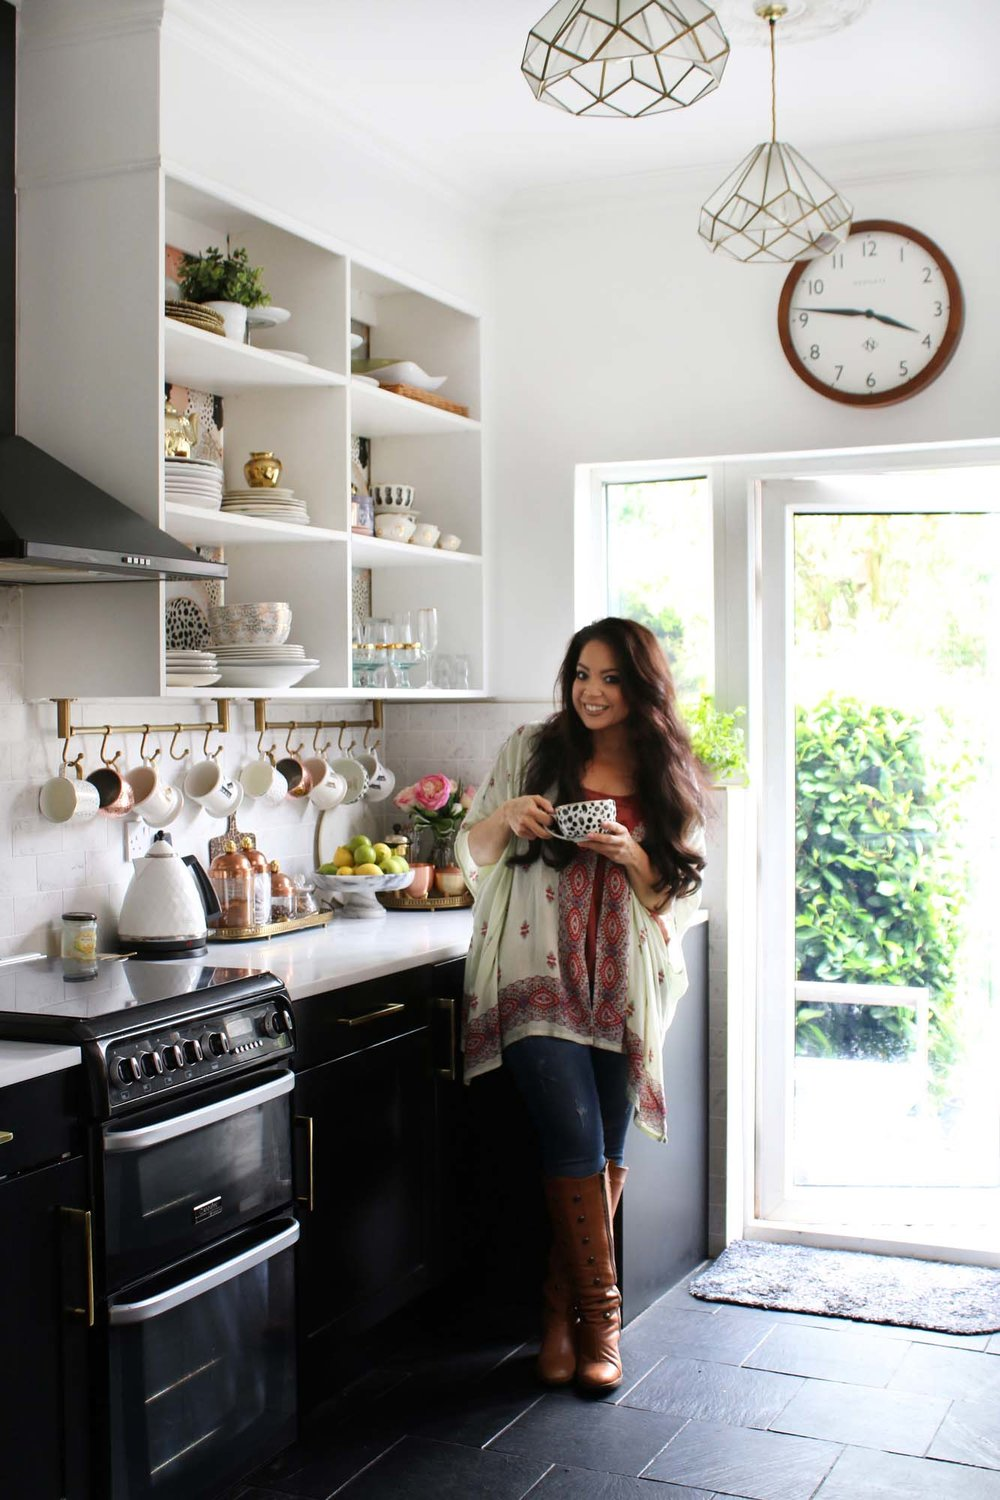 Kimberly from Swoon Worthy in her kitchen